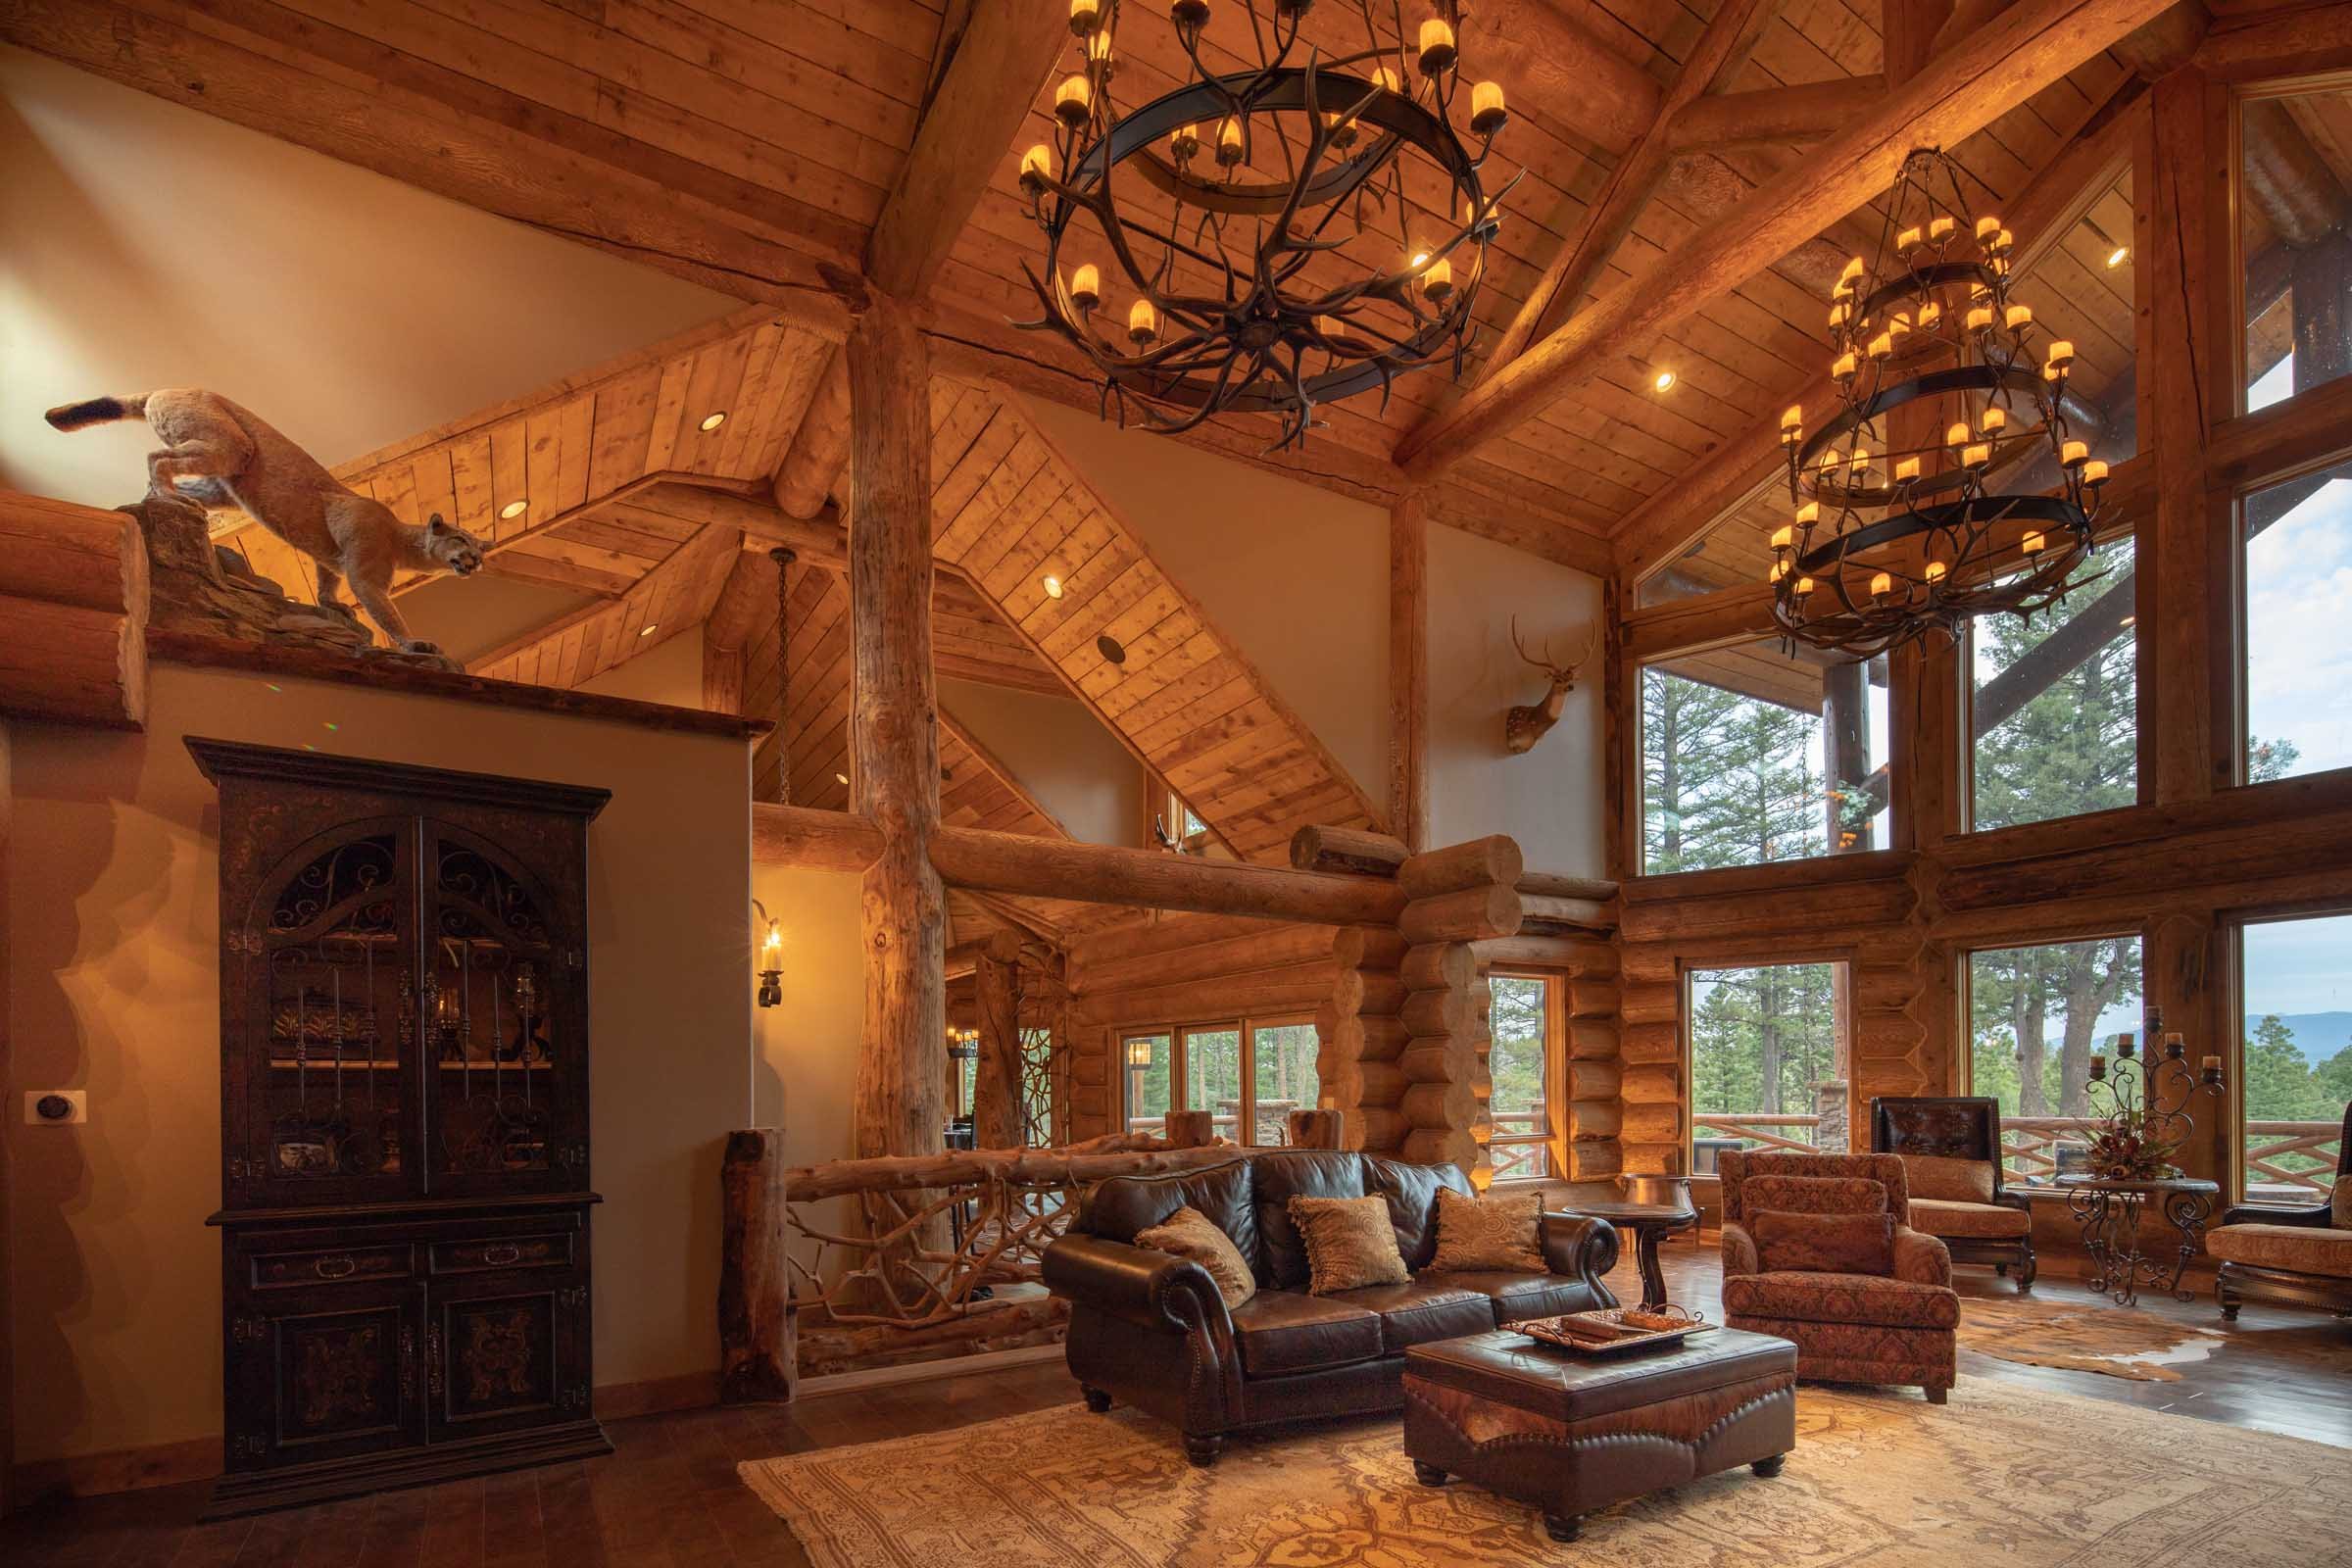 Luxury log cabin angel fire new mexico-13